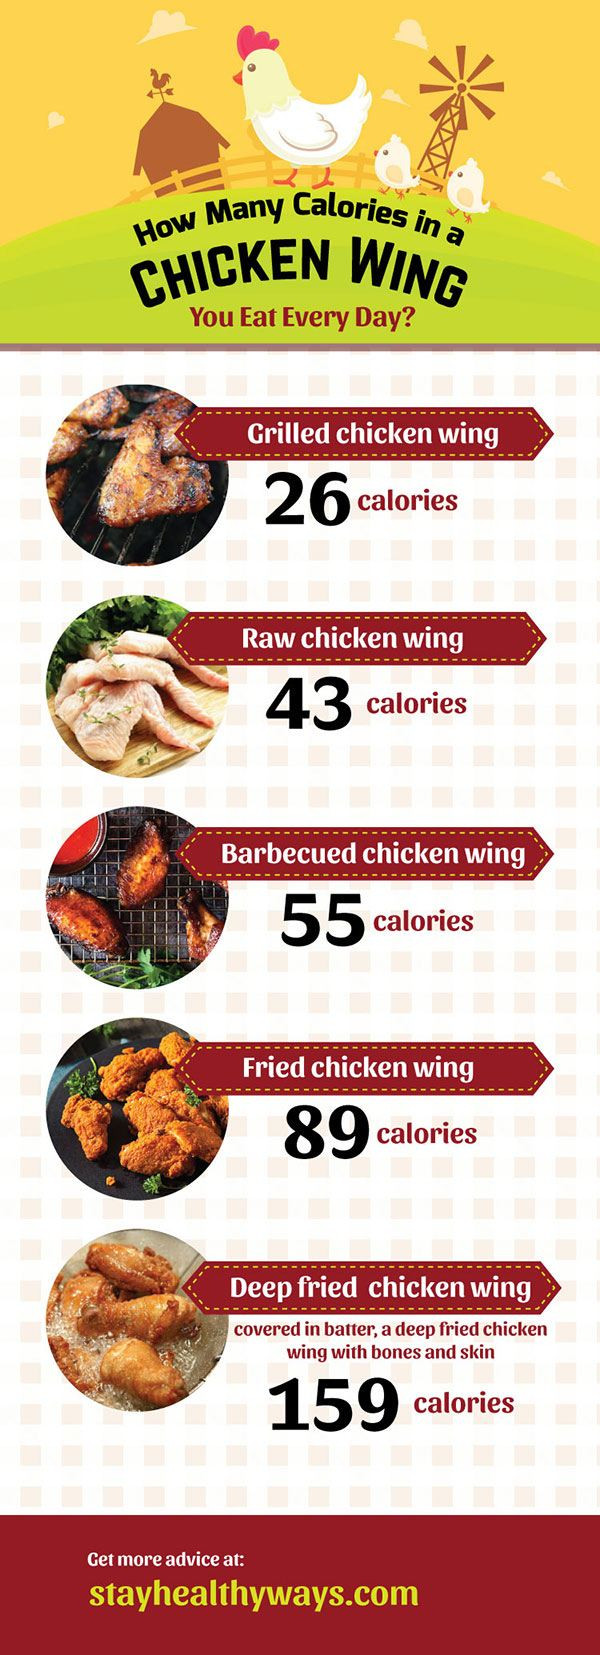 Fried Chicken Wing Calories  How Many Calories In A Chicken Wing You Eat Every Day